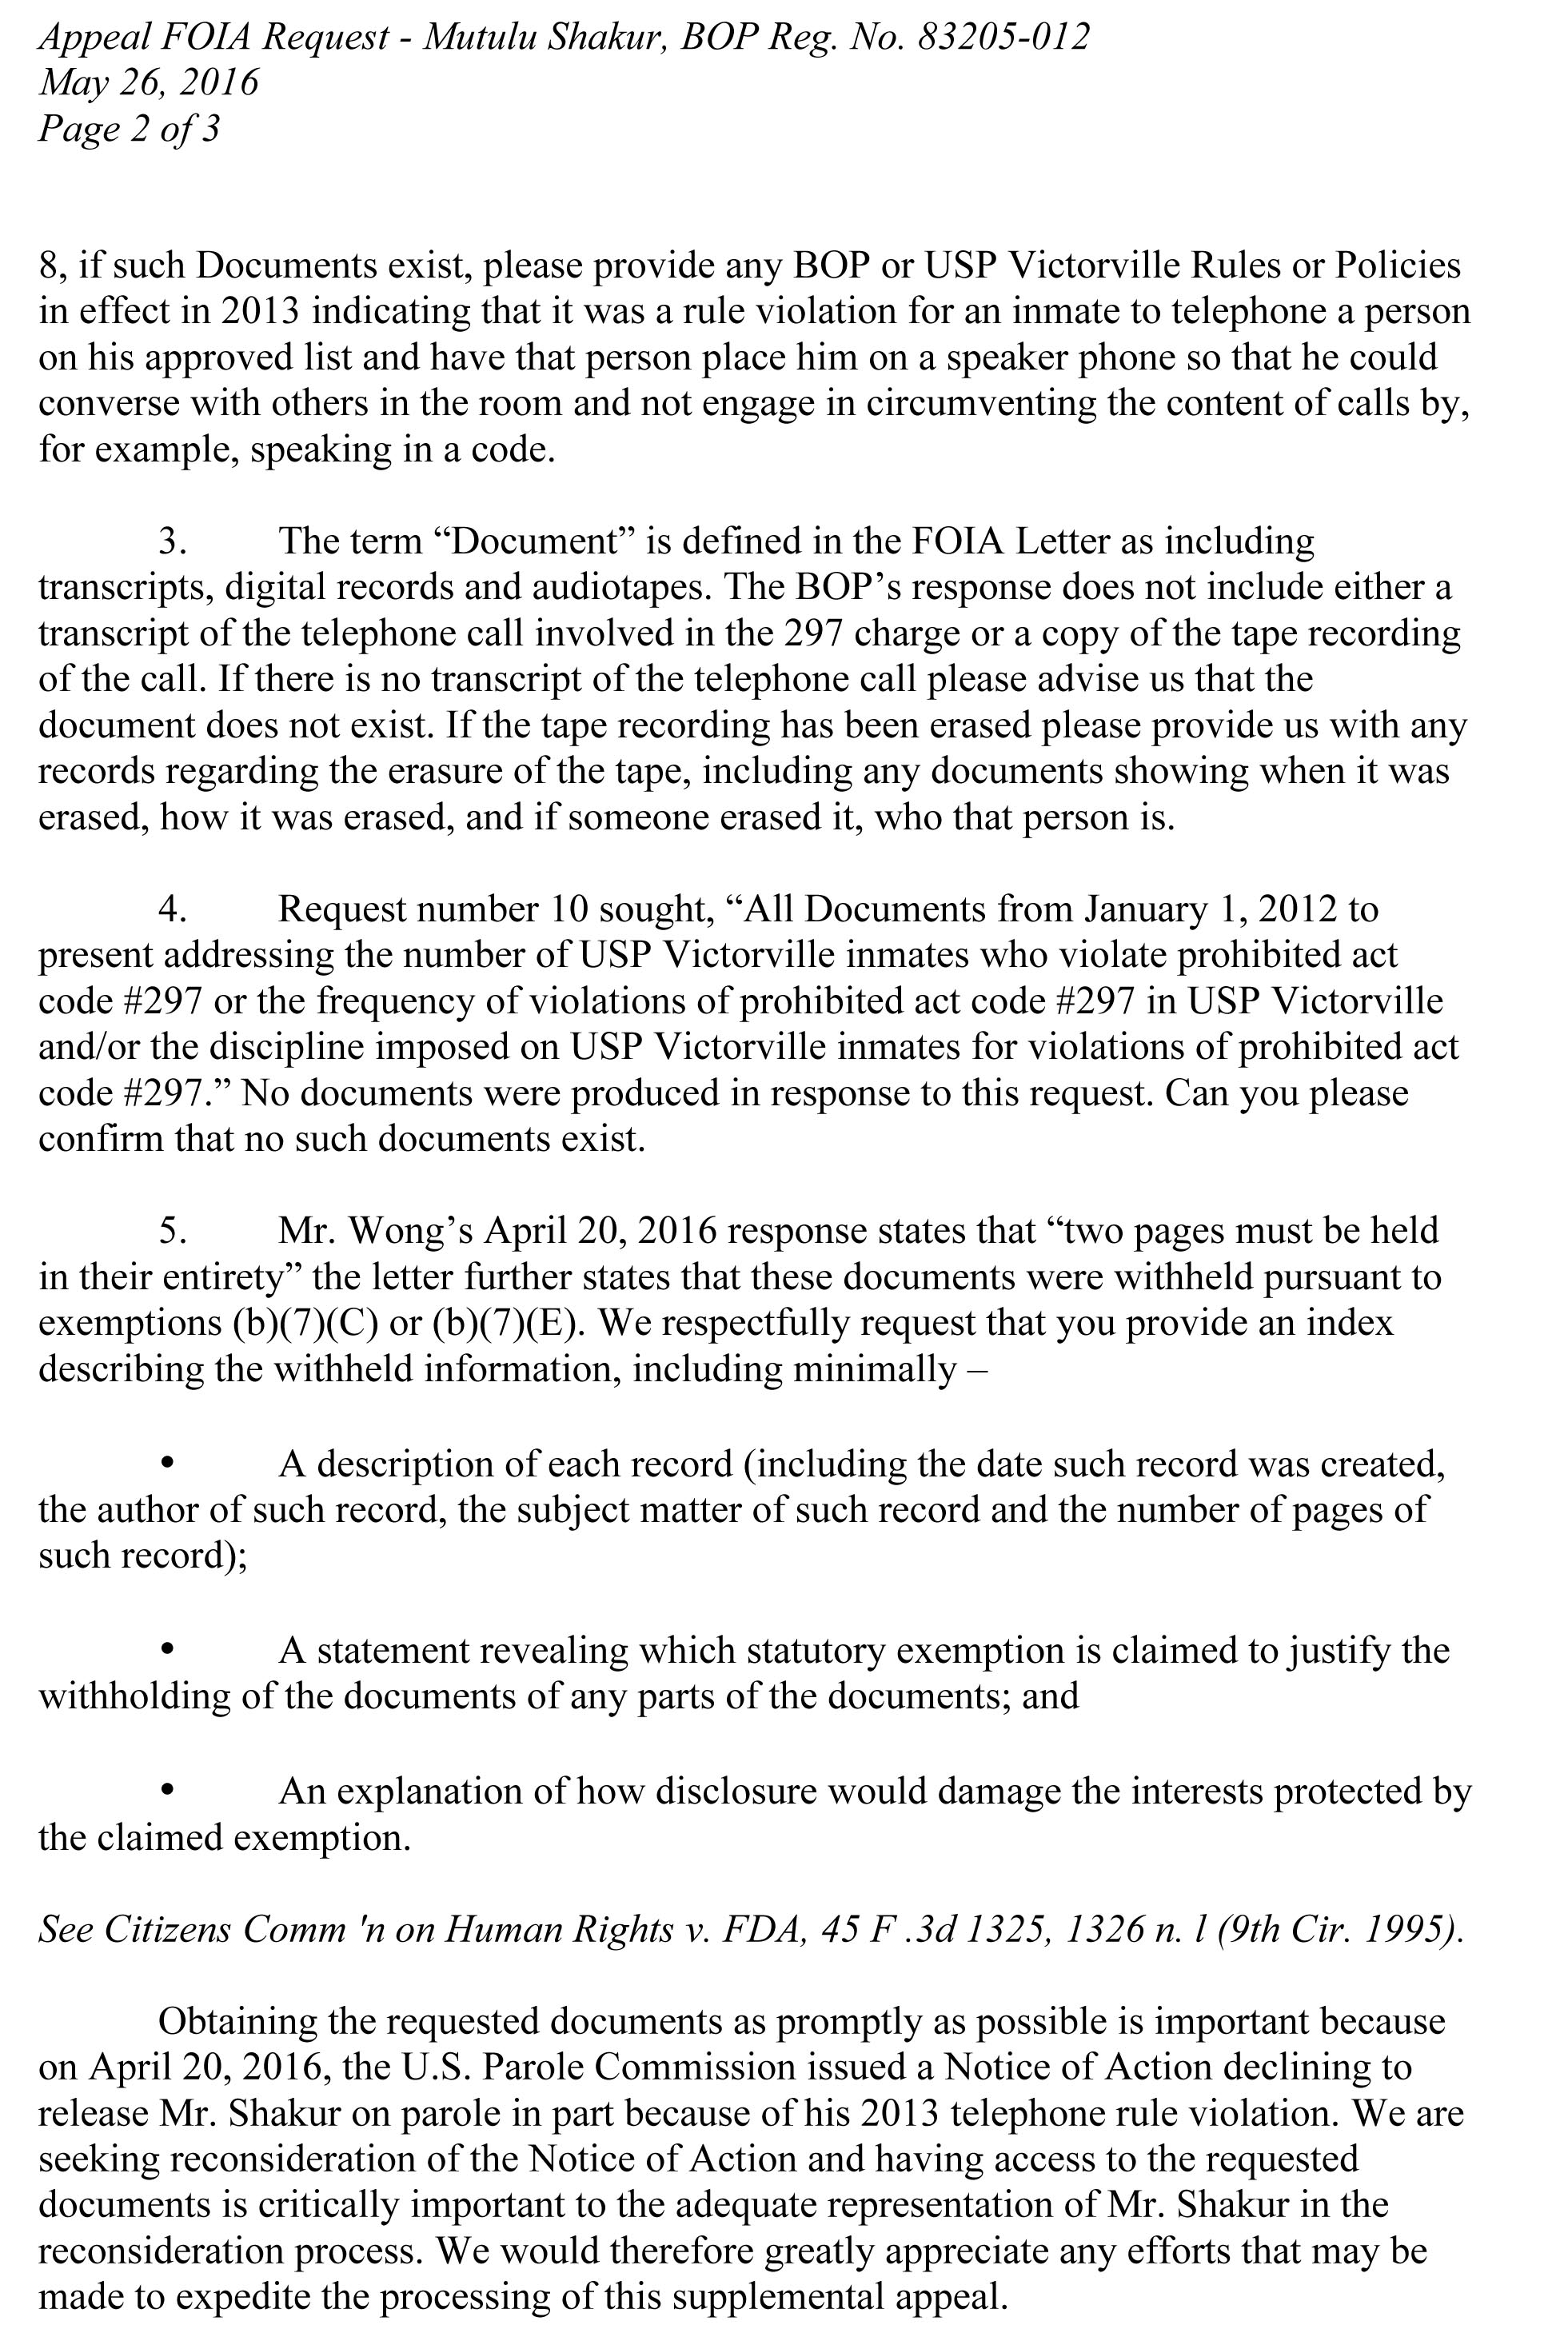 Microsoft Word - 05-25-16 FOIA Response to Released Docs Re Appe